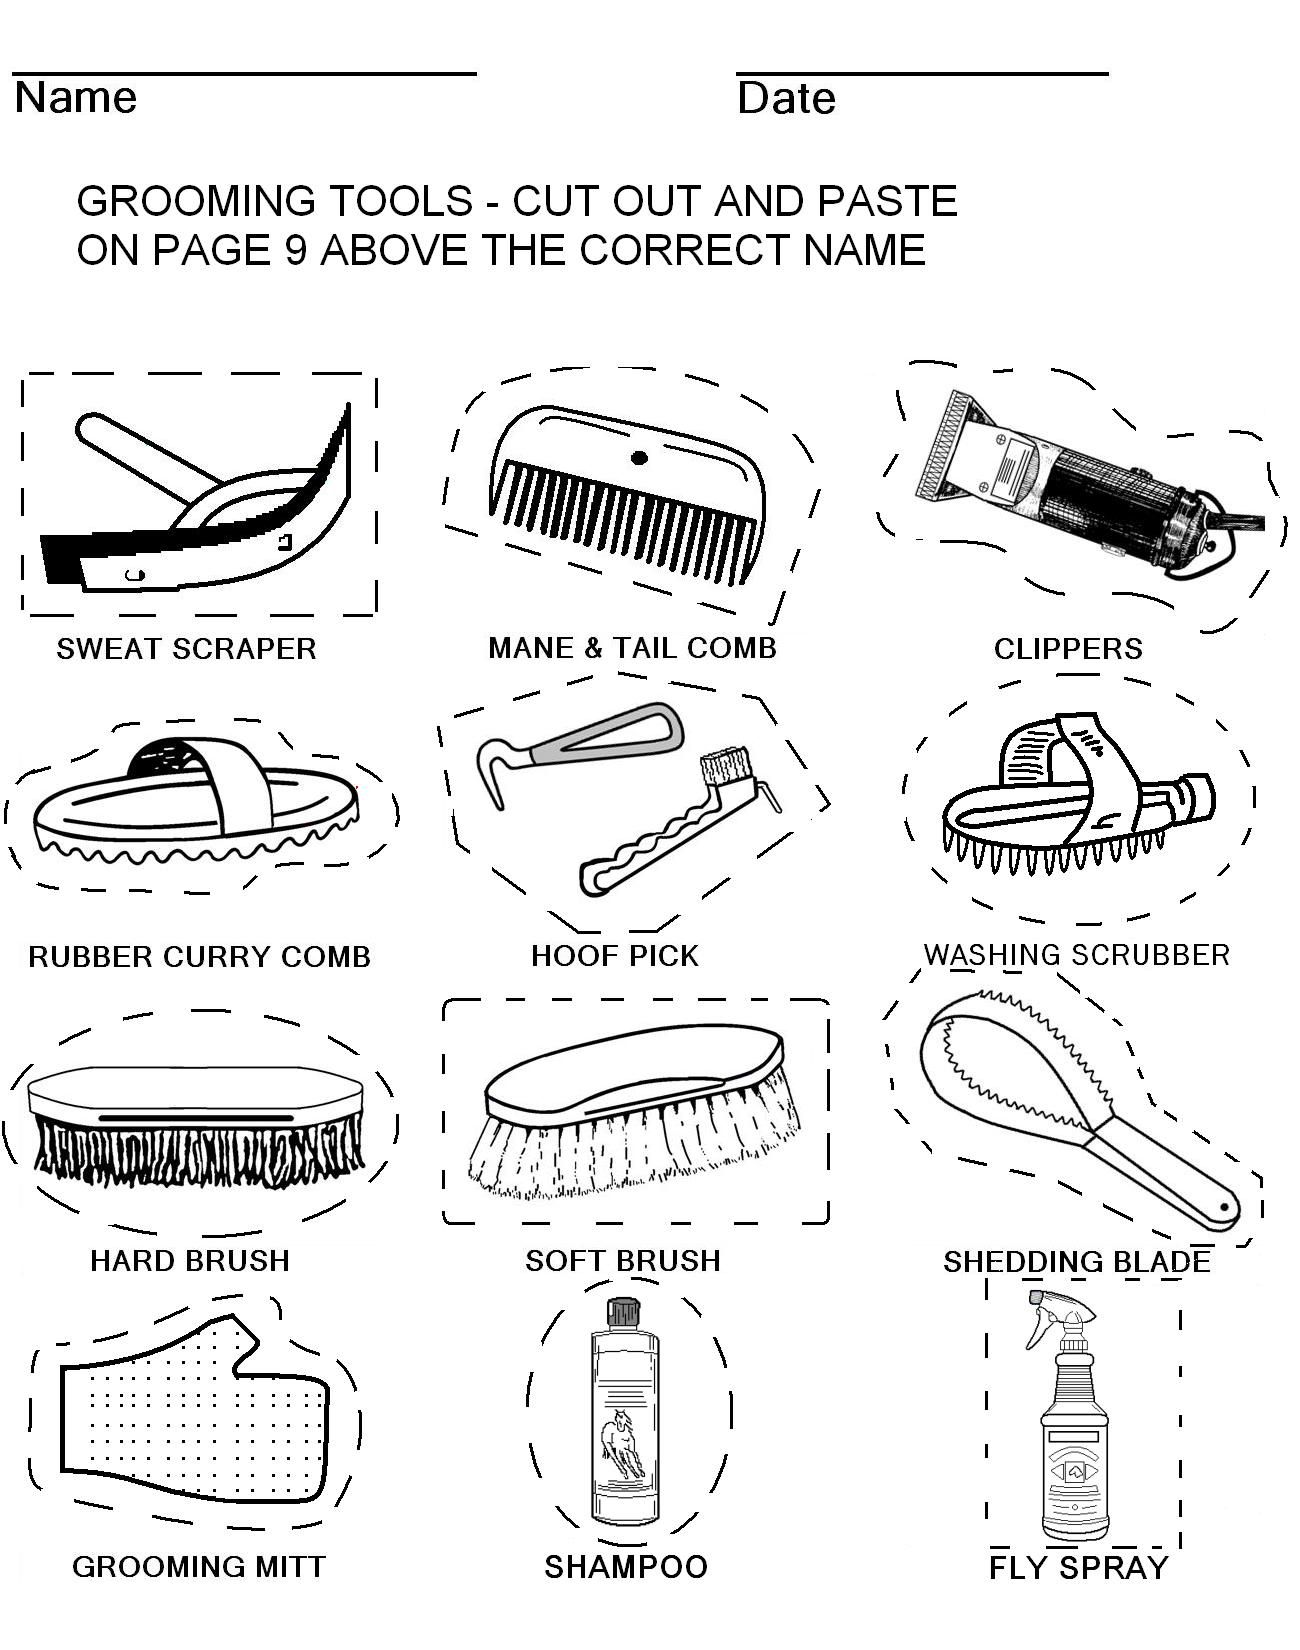 hight resolution of grooming tools cut amp paste page 8 the rest of the pages